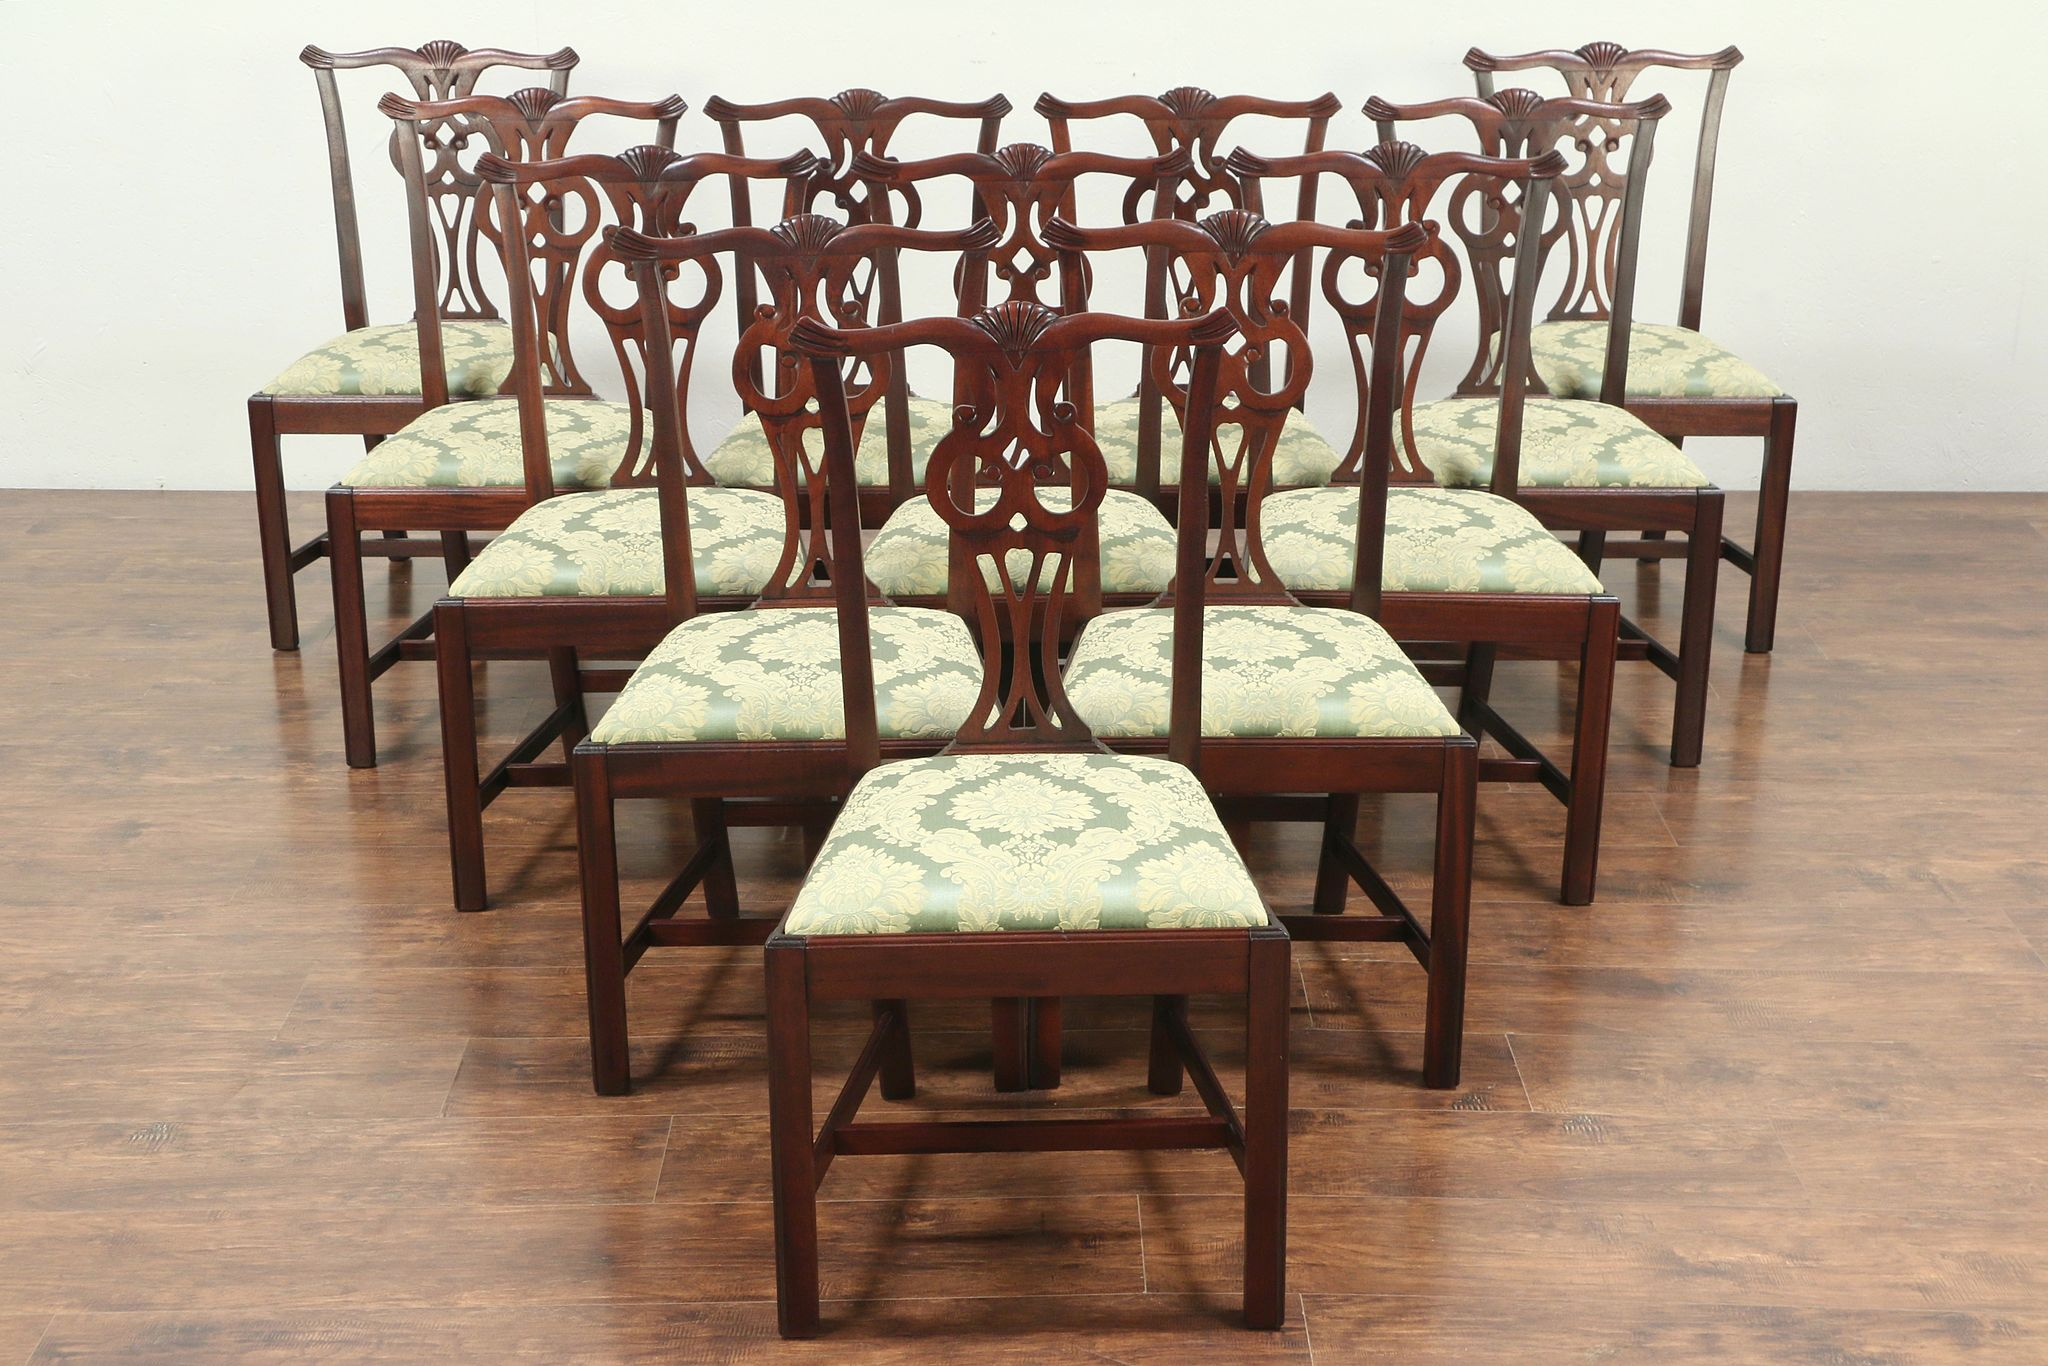 Set of 12 Georgian Style Vintage Mahogany Dining Chairs, New Upholstery  #29193